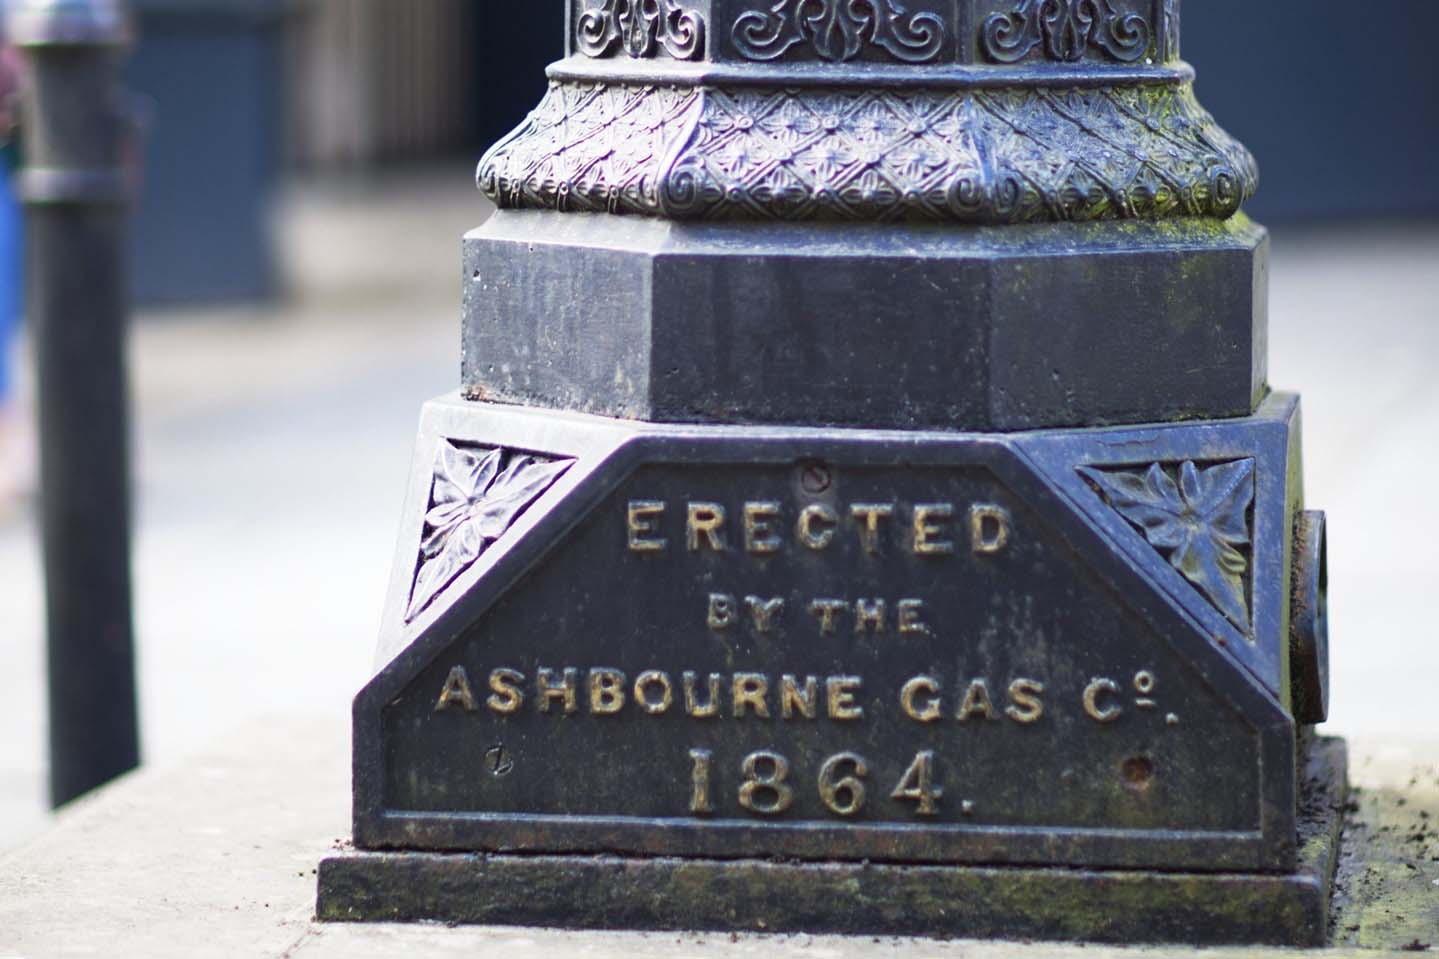 Ashbourne historical gas outlet from 1864